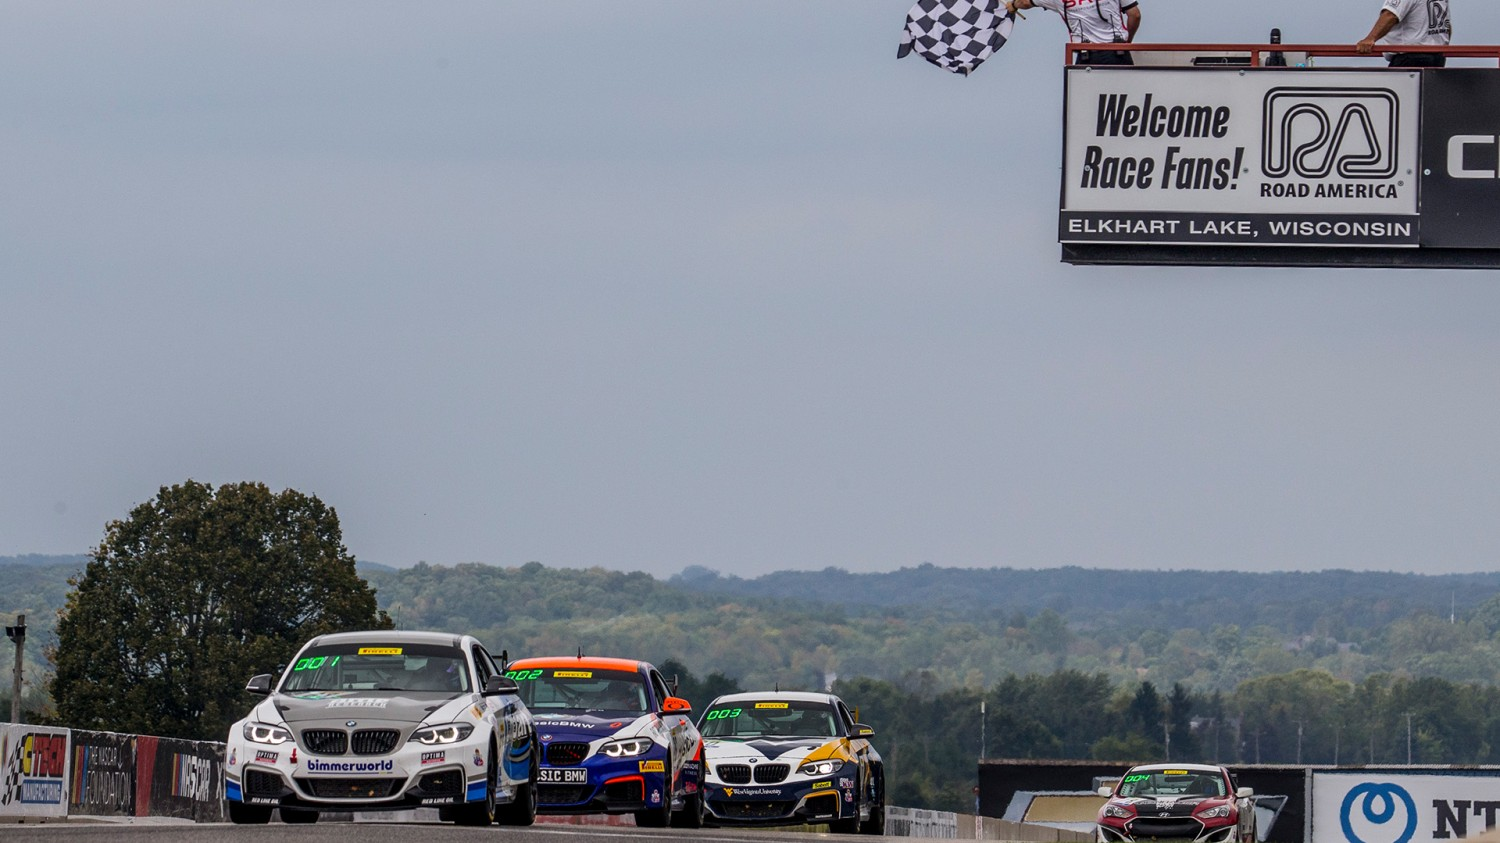 Series Veteran Clay Wins Action-Packed TC Round 11 at Road America